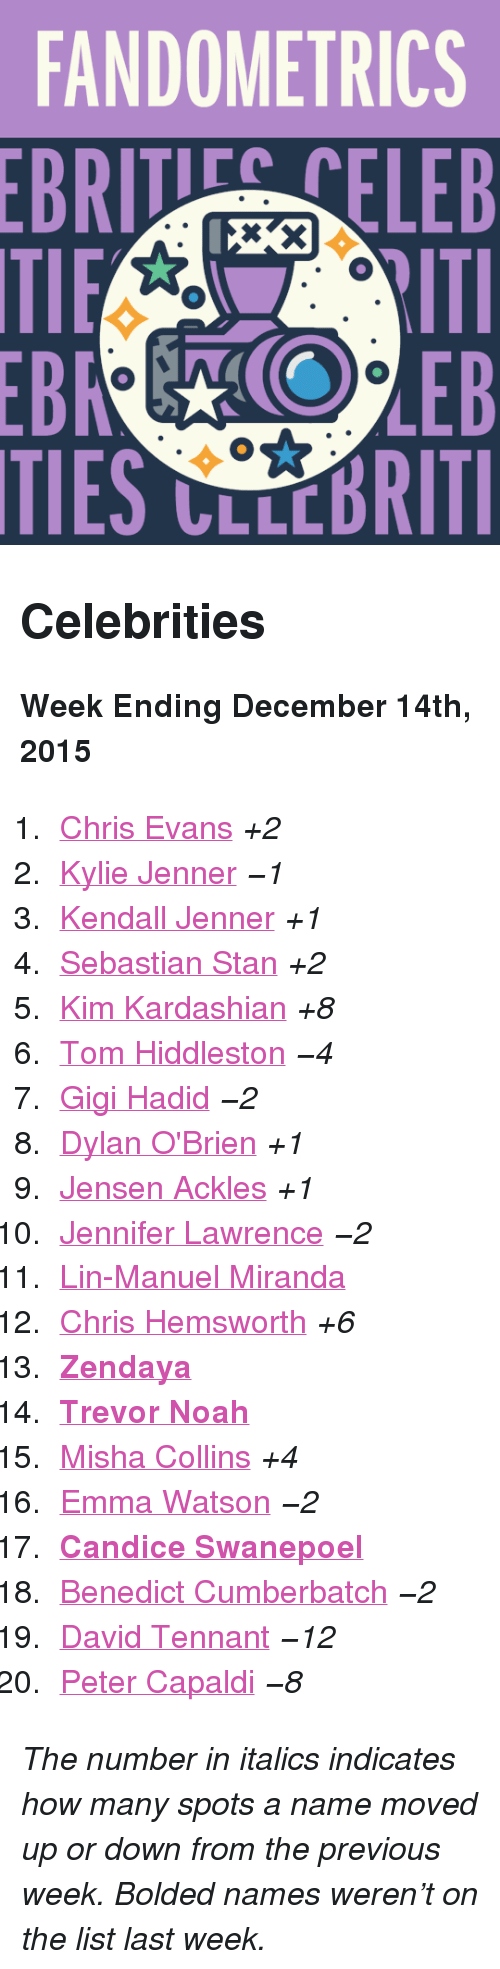 """Dylan O'Brien: FANDOMETRICS  BRTELEB  TIES CLLCBRITI <h2>Celebrities</h2><p><b>Week Ending December 14th, 2015</b></p><ol><li><a href=""""http://www.tumblr.com/search/chris%20evans"""">Chris Evans</a><i>+2</i></li>  <li><a href=""""http://www.tumblr.com/search/kylie%20jenner"""">Kylie Jenner</a><i>−1</i></li>  <li><a href=""""http://www.tumblr.com/search/kendall%20jenner"""">Kendall Jenner</a><i>+1</i></li>  <li><a href=""""http://www.tumblr.com/search/sebastian%20stan"""">Sebastian Stan</a><i>+2</i></li>  <li><a href=""""http://www.tumblr.com/search/kim%20kardashian"""">Kim Kardashian</a><i>+8</i></li>  <li><a href=""""http://www.tumblr.com/search/tom%20hiddleston"""">Tom Hiddleston</a><i>−4</i></li>  <li><a href=""""http://www.tumblr.com/search/gigi%20hadid"""">Gigi Hadid</a><i>−2</i></li>  <li><a href=""""http://www.tumblr.com/search/dylan%20o'brien"""">Dylan O'Brien</a><i>+1</i></li>  <li><a href=""""http://www.tumblr.com/search/jensen%20ackles"""">Jensen Ackles</a><i>+1</i></li>  <li><a href=""""http://www.tumblr.com/search/jennifer%20lawrence"""">Jennifer Lawrence</a><i>−2</i></li>  <li><a href=""""http://www.tumblr.com/search/lin%20manuel%20miranda"""">Lin-Manuel Miranda</a></li>  <li><a href=""""http://www.tumblr.com/search/chris%20hemsworth"""">Chris Hemsworth</a><i>+6</i></li>  <li><a href=""""http://www.tumblr.com/search/zendaya""""><b>Zendaya</b></a></li>  <li><a href=""""http://www.tumblr.com/search/trevor%20noah""""><b>Trevor Noah</b></a></li>  <li><a href=""""http://www.tumblr.com/search/misha%20collins"""">Misha Collins</a><i>+4</i></li>  <li><a href=""""http://www.tumblr.com/search/emma%20watson"""">Emma Watson</a><i>−2</i></li>  <li><a href=""""http://www.tumblr.com/search/candice%20swanepoel""""><b>Candice Swanepoel</b></a></li>  <li><a href=""""http://www.tumblr.com/search/benedict%20cumberbatch"""">Benedict Cumberbatch</a><i>−2</i></li>  <li><a href=""""http://www.tumblr.com/search/david%20tennant"""">David Tennant</a><i>−12</i></li>  <li><a href=""""http://www.tumblr.com/search/peter%20capaldi"""">Peter Capaldi</a><i>−8</i></li></ol><p><i>The number in italics i"""